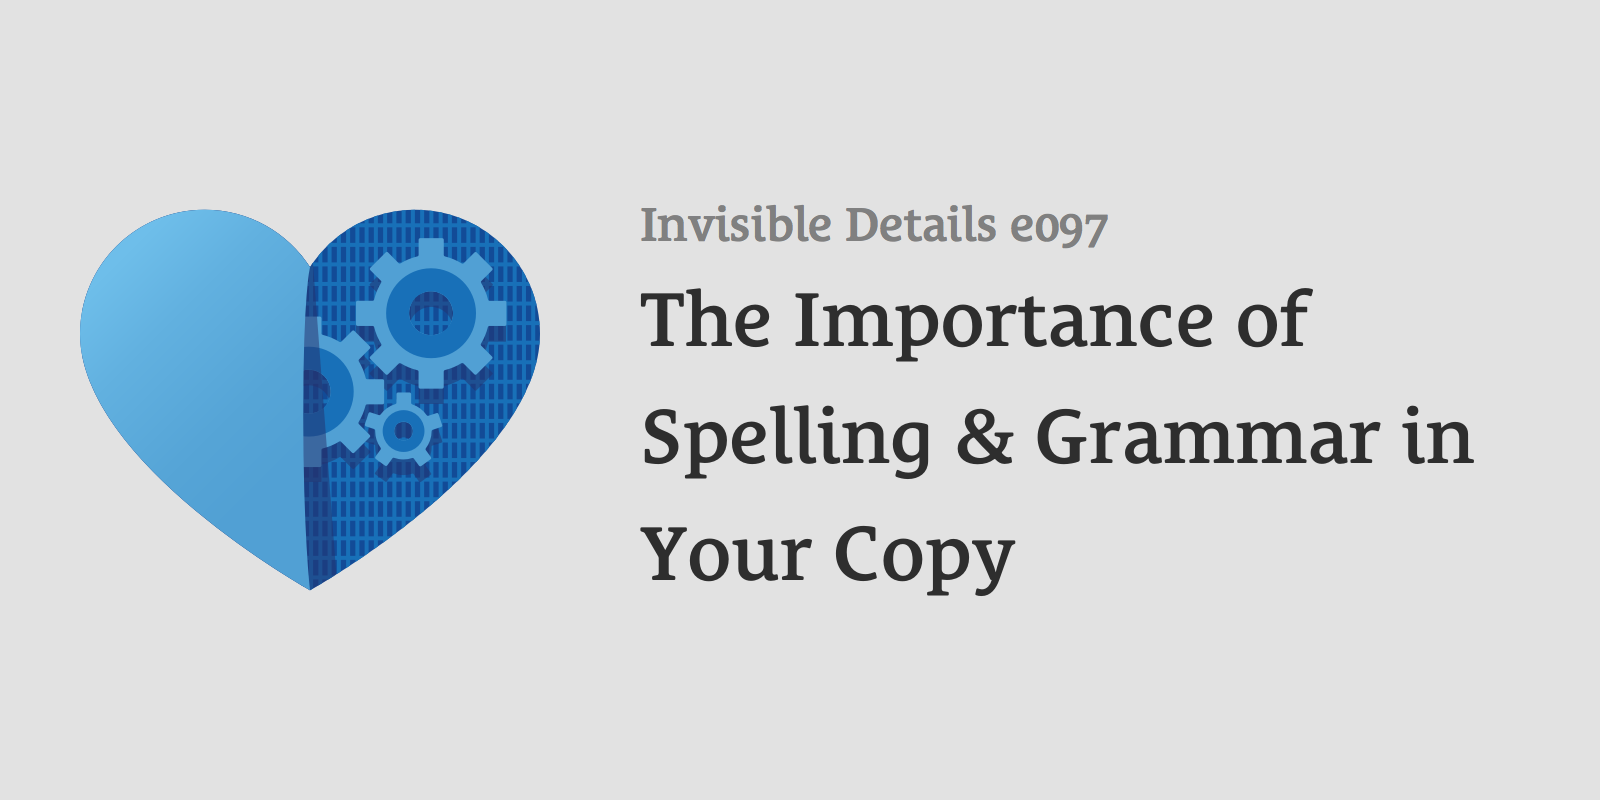 The Importance of Spelling and Grammar in Your Copy